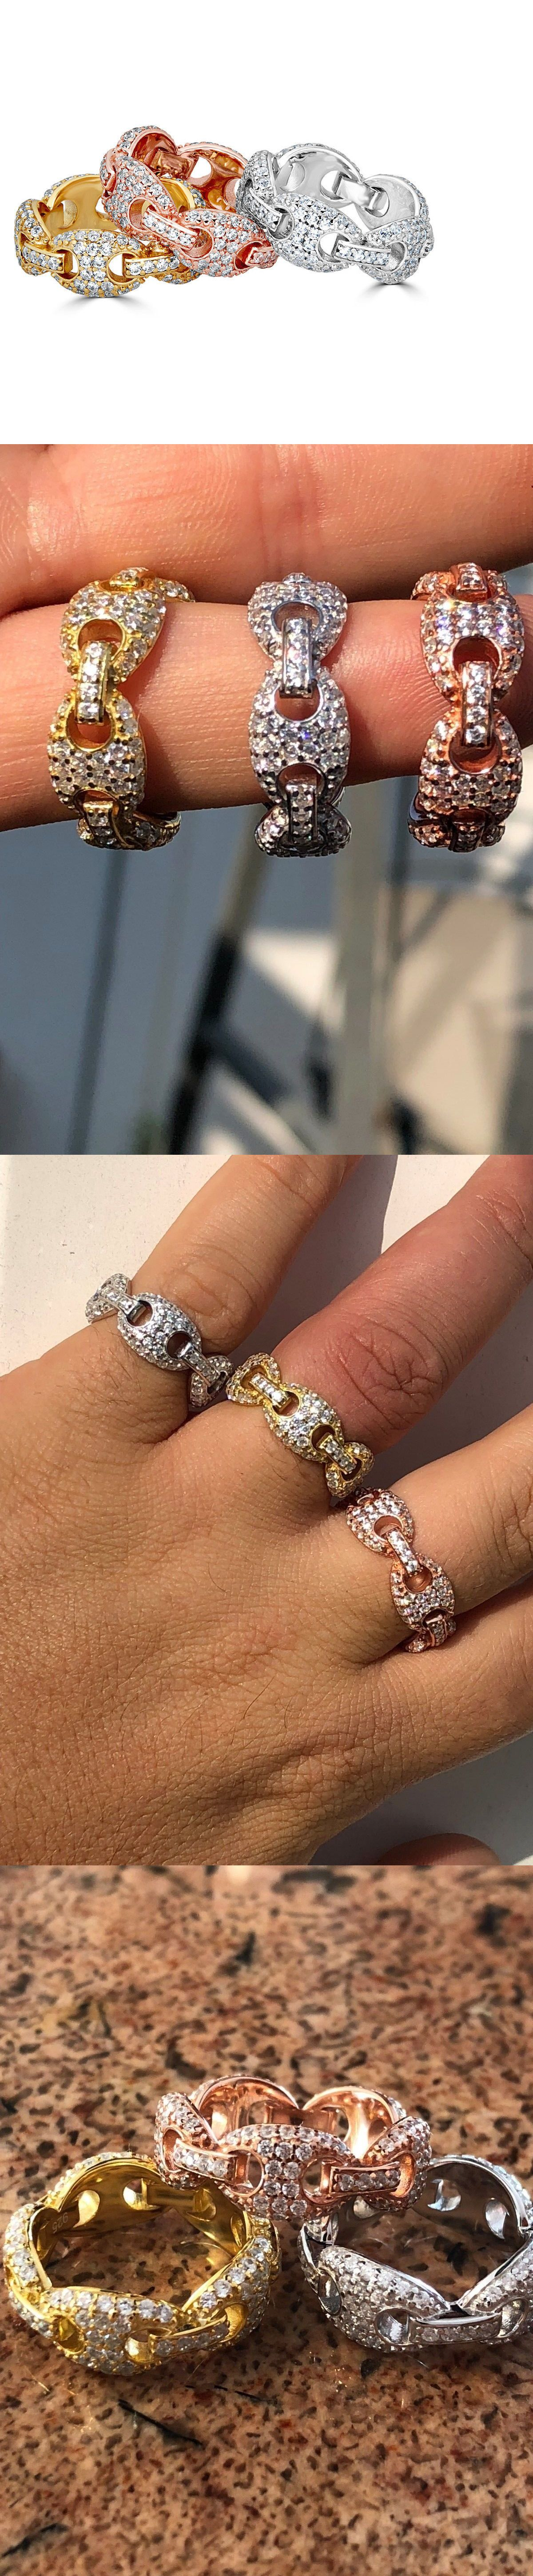 1b7a5200b Rings 137856  Solid 925 Silver Gucci Link Diamond Pinky Ring 14K Gold  Wedding Band Mens Ladies -  BUY IT NOW ONLY   32.29 on  eBay  rings  solid   silver ...